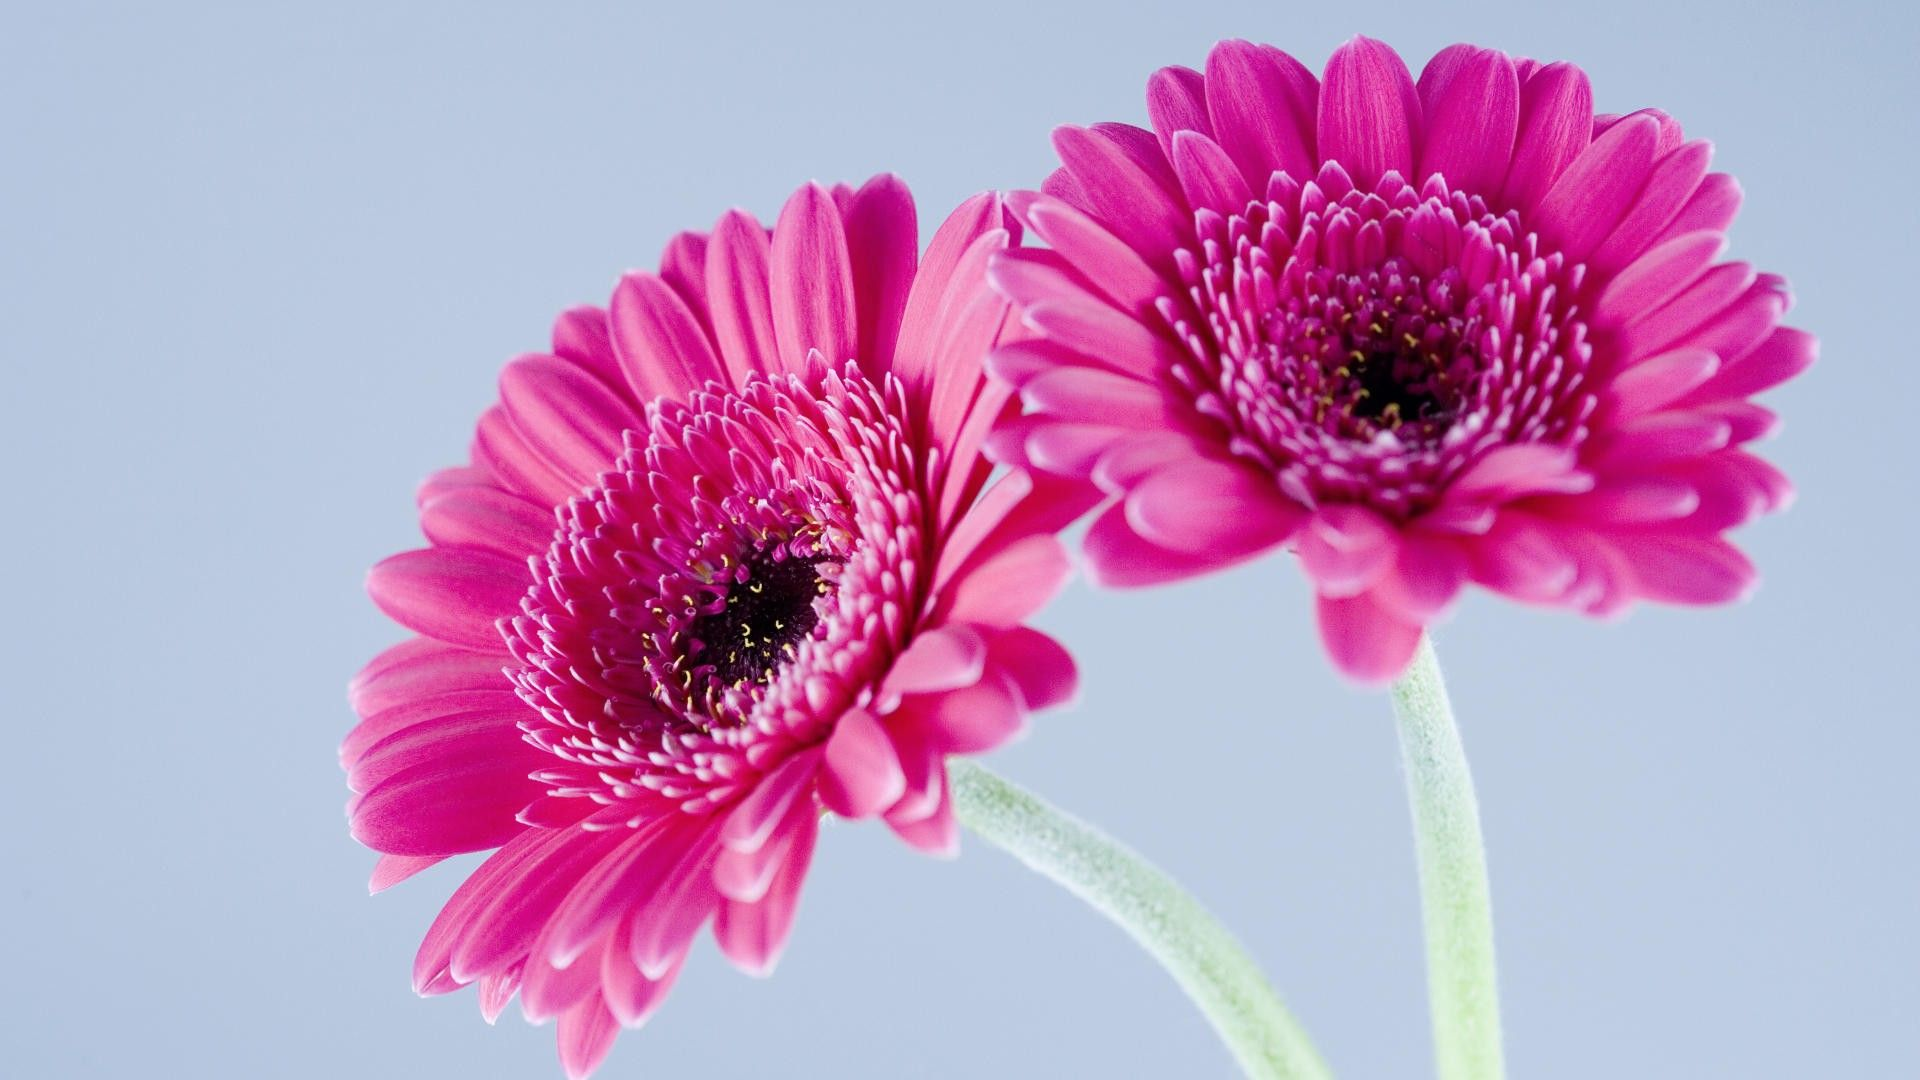 Pin by art lavaux on pink pinterest explore gerbera flower pink gerbera and more mightylinksfo Images